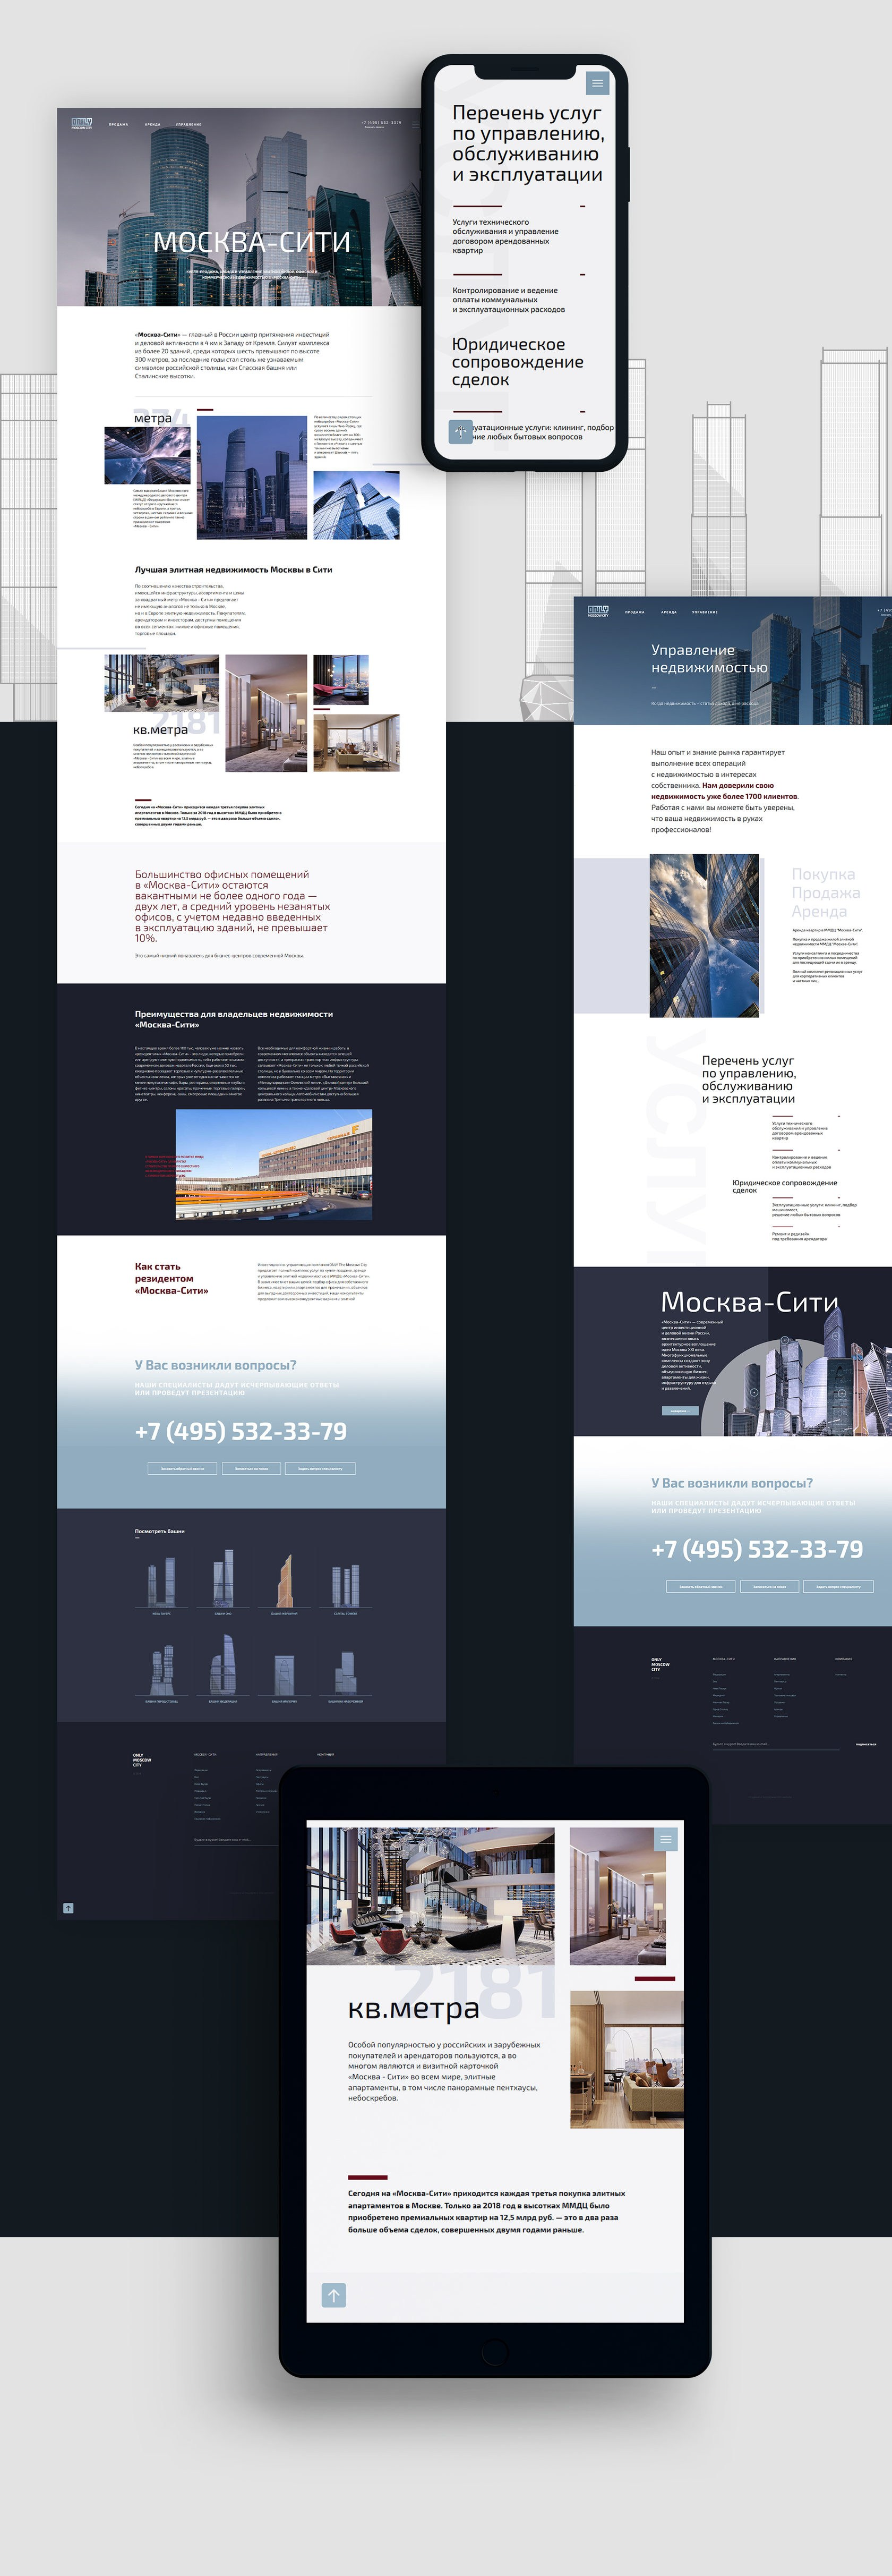 Web design for Only moscow